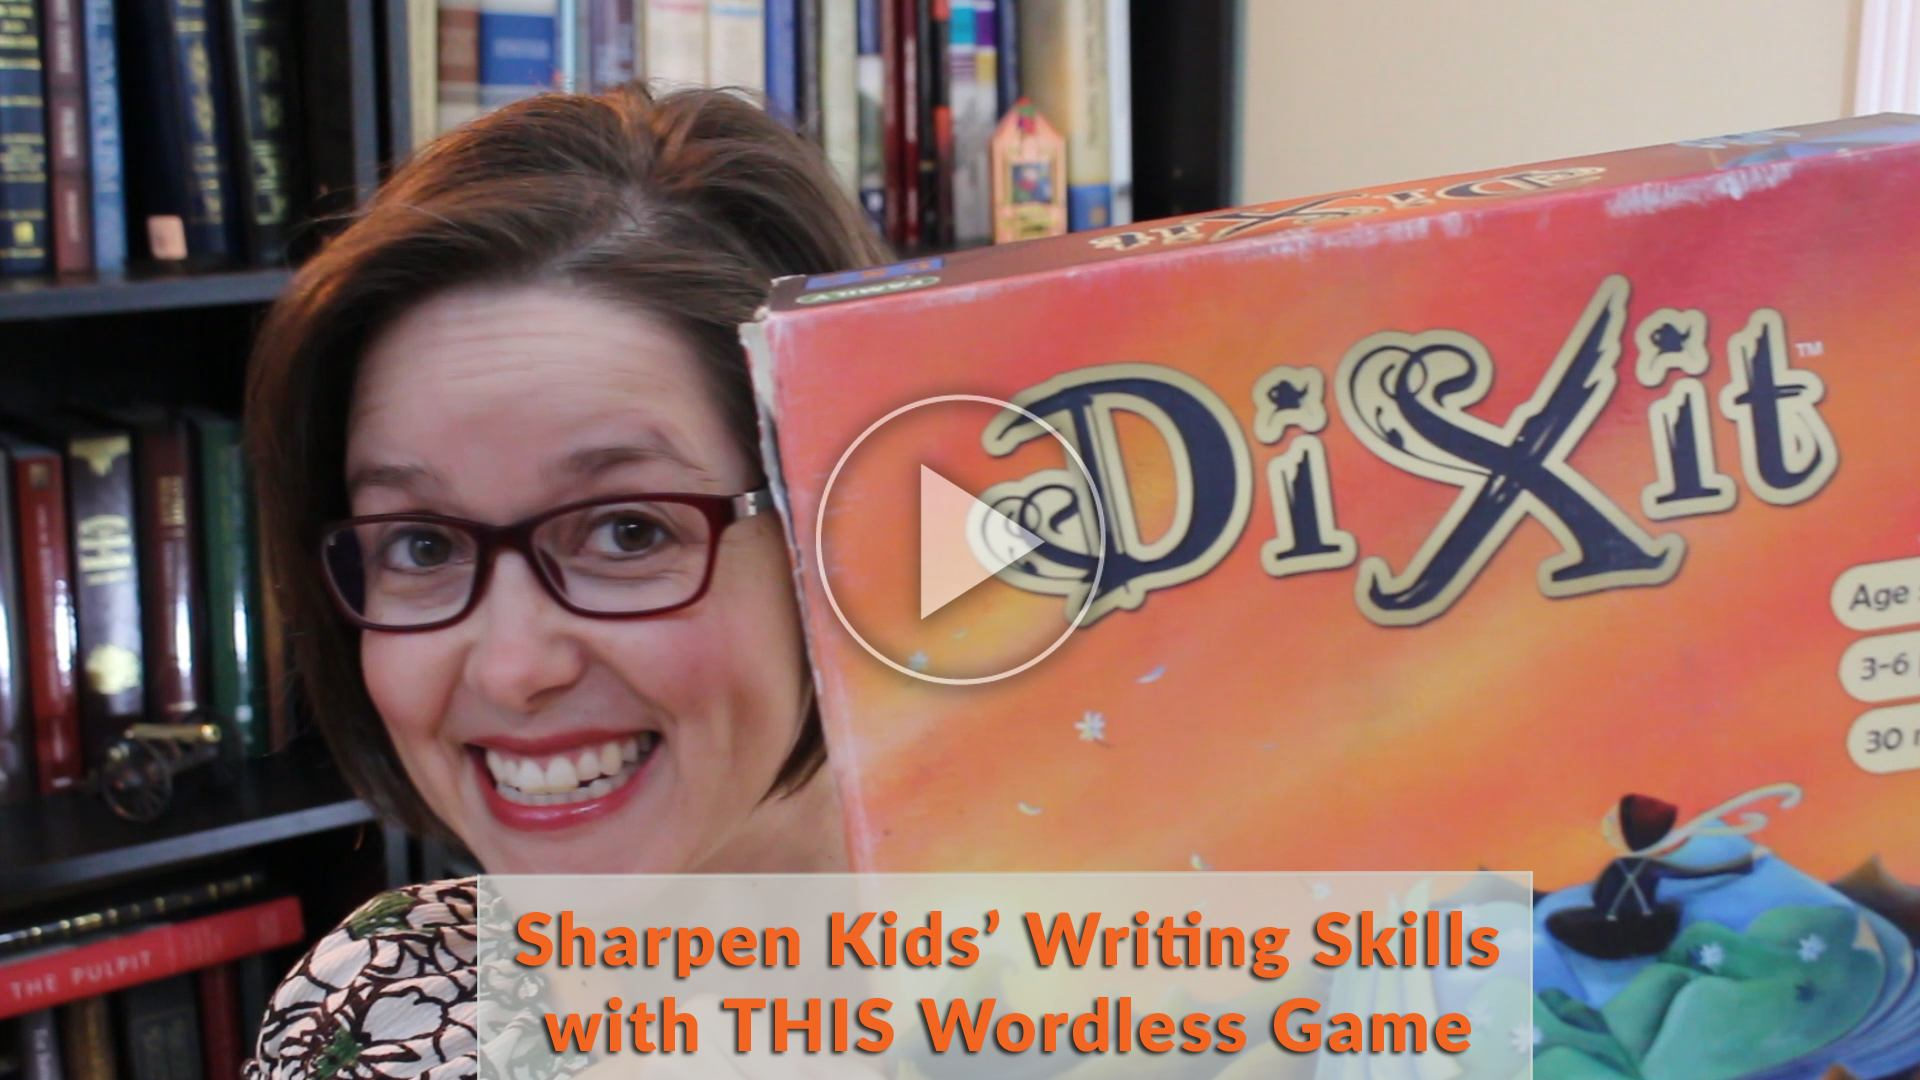 Sharpen Kids' Creative Writing Skills with THIS Wordless